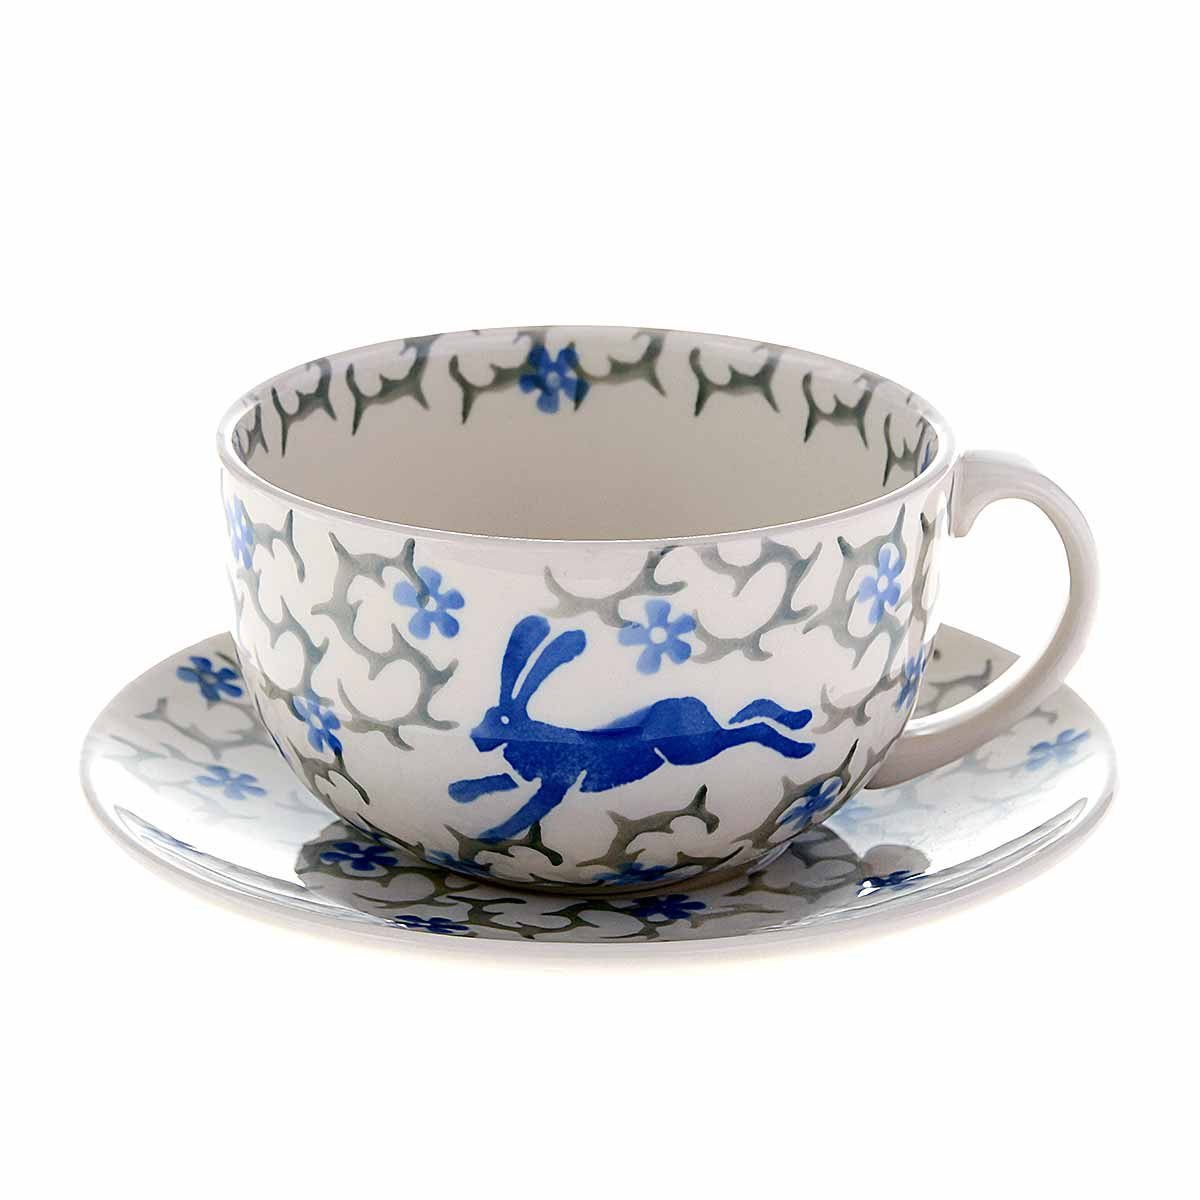 cup and saucer on white background